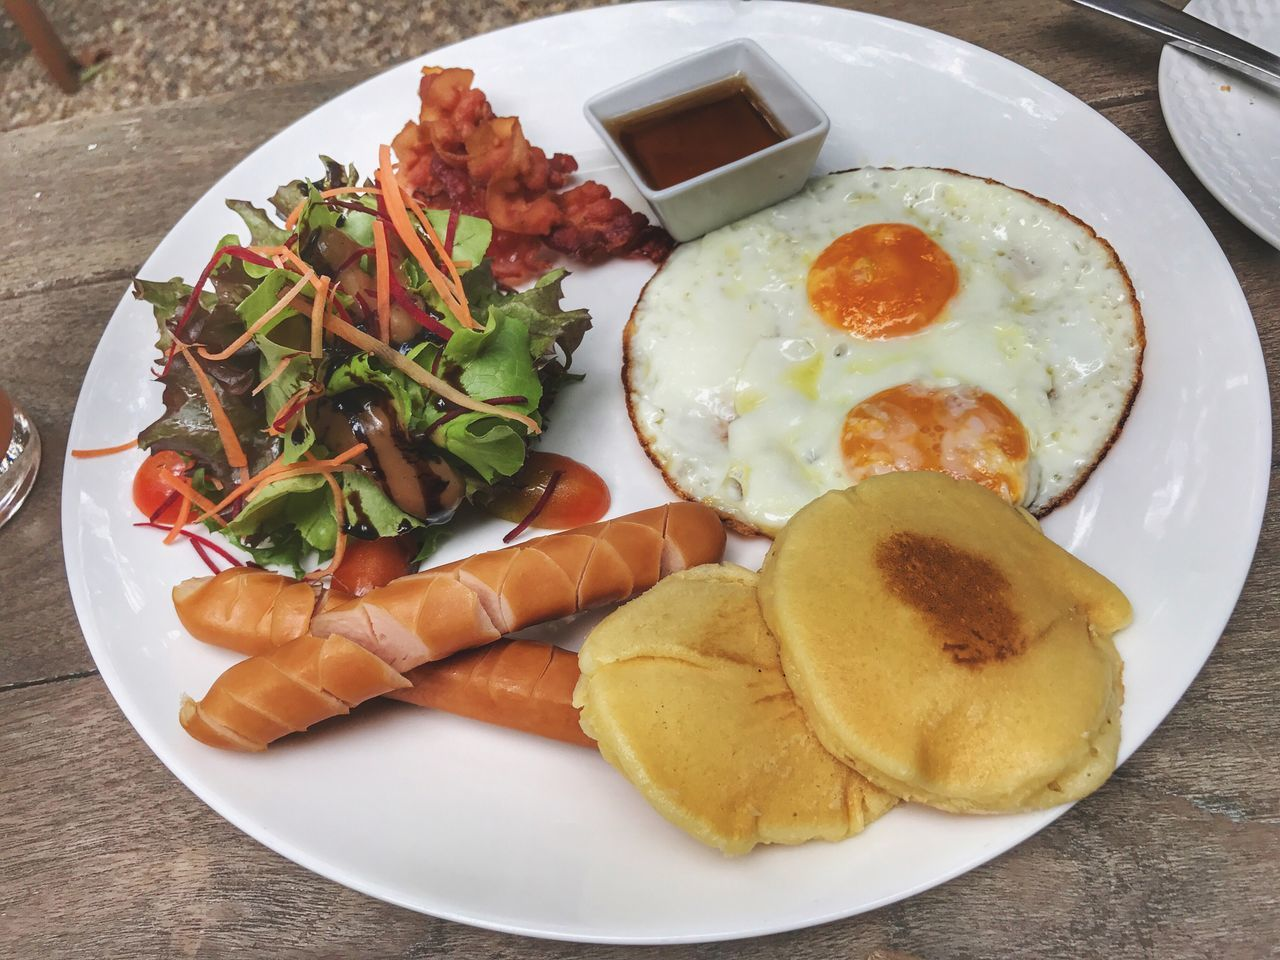 Ready-to-eat Food And Drink Food Plate Freshness Fried Serving Size Breakfast Fried Egg Table Close-up Indoors  Meal No People English Breakfast Healthy Eating Bacon Sausage Fried Potato Egg Yolk Breakfast Pancake Tasty Yummy